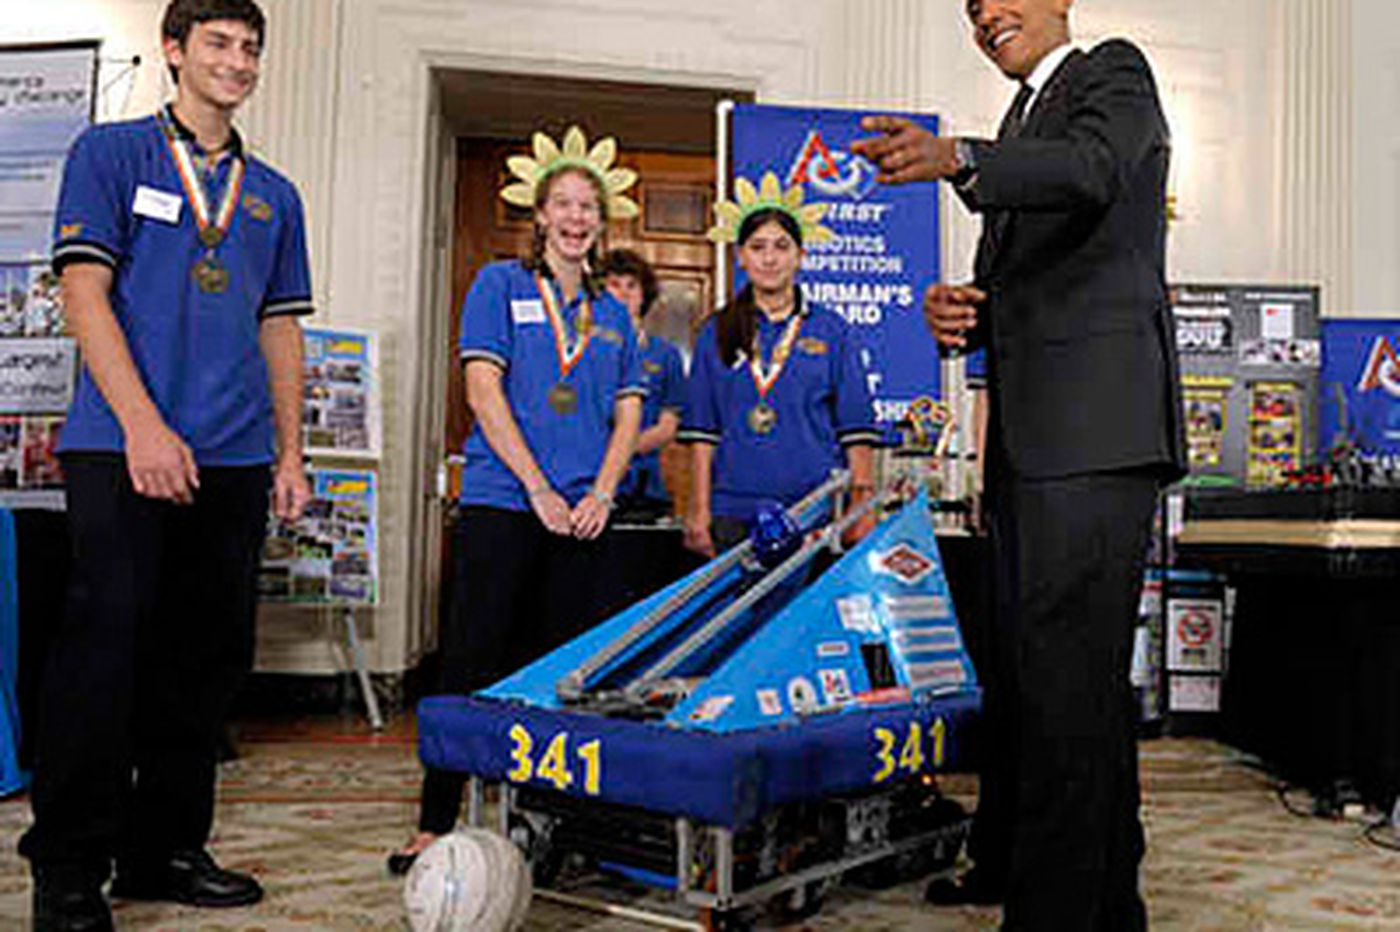 Philly-area students honored in White House Science Fair